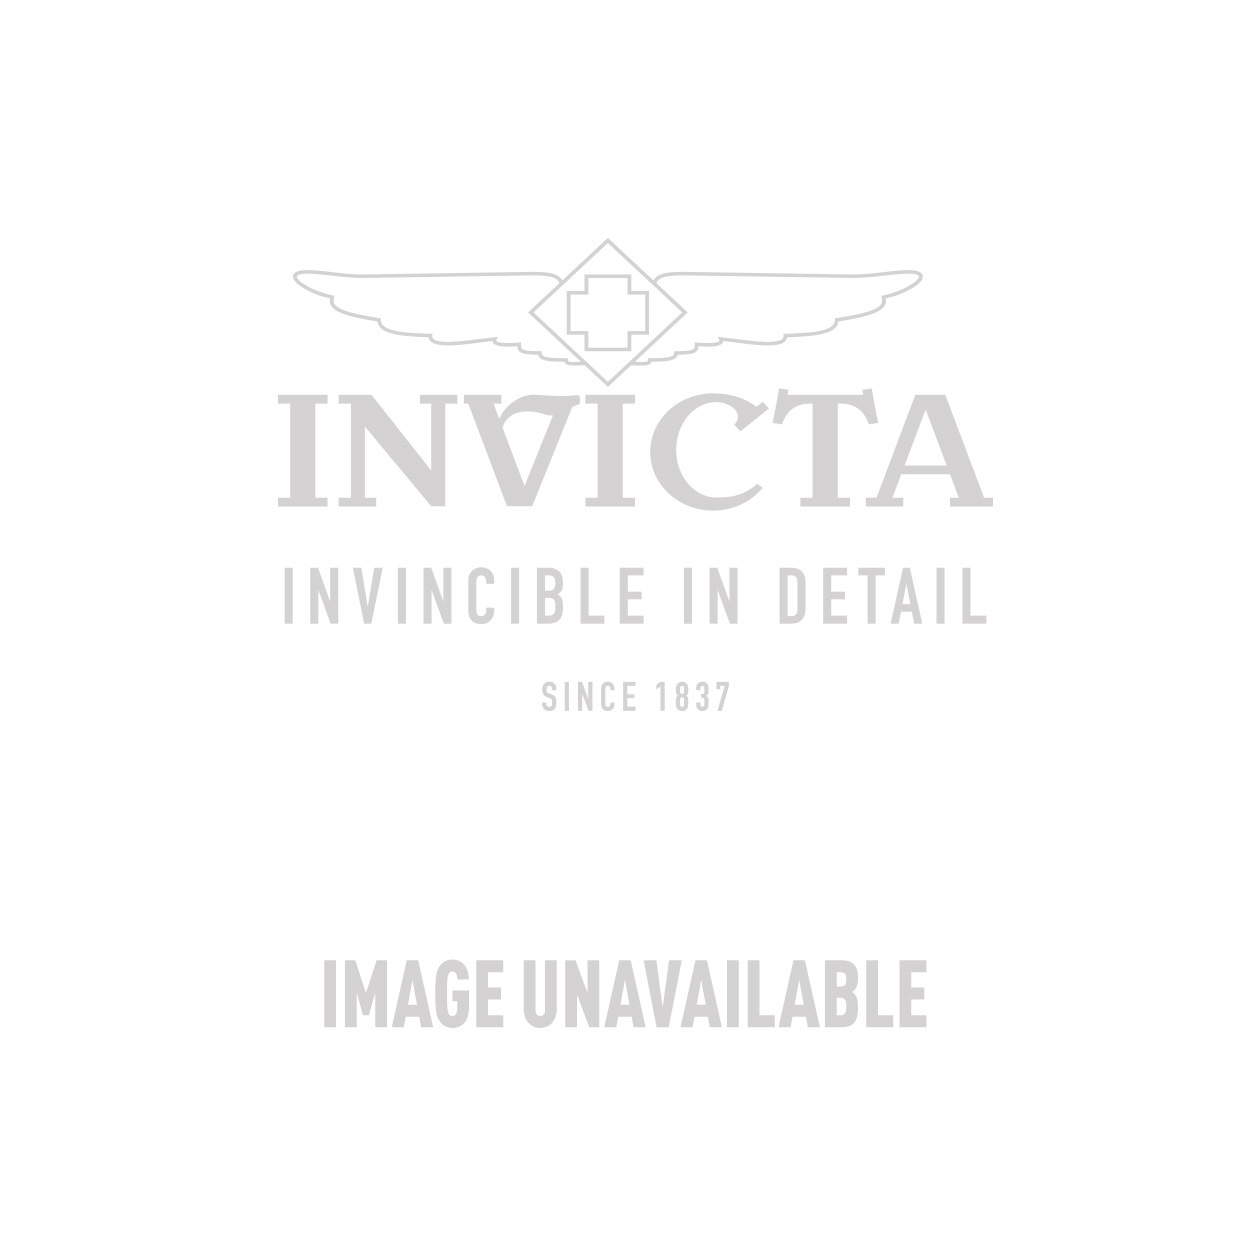 Invicta Excursion  Quartz Watch - Gold, Stainless Steel case Stainless Steel band - Model 11004